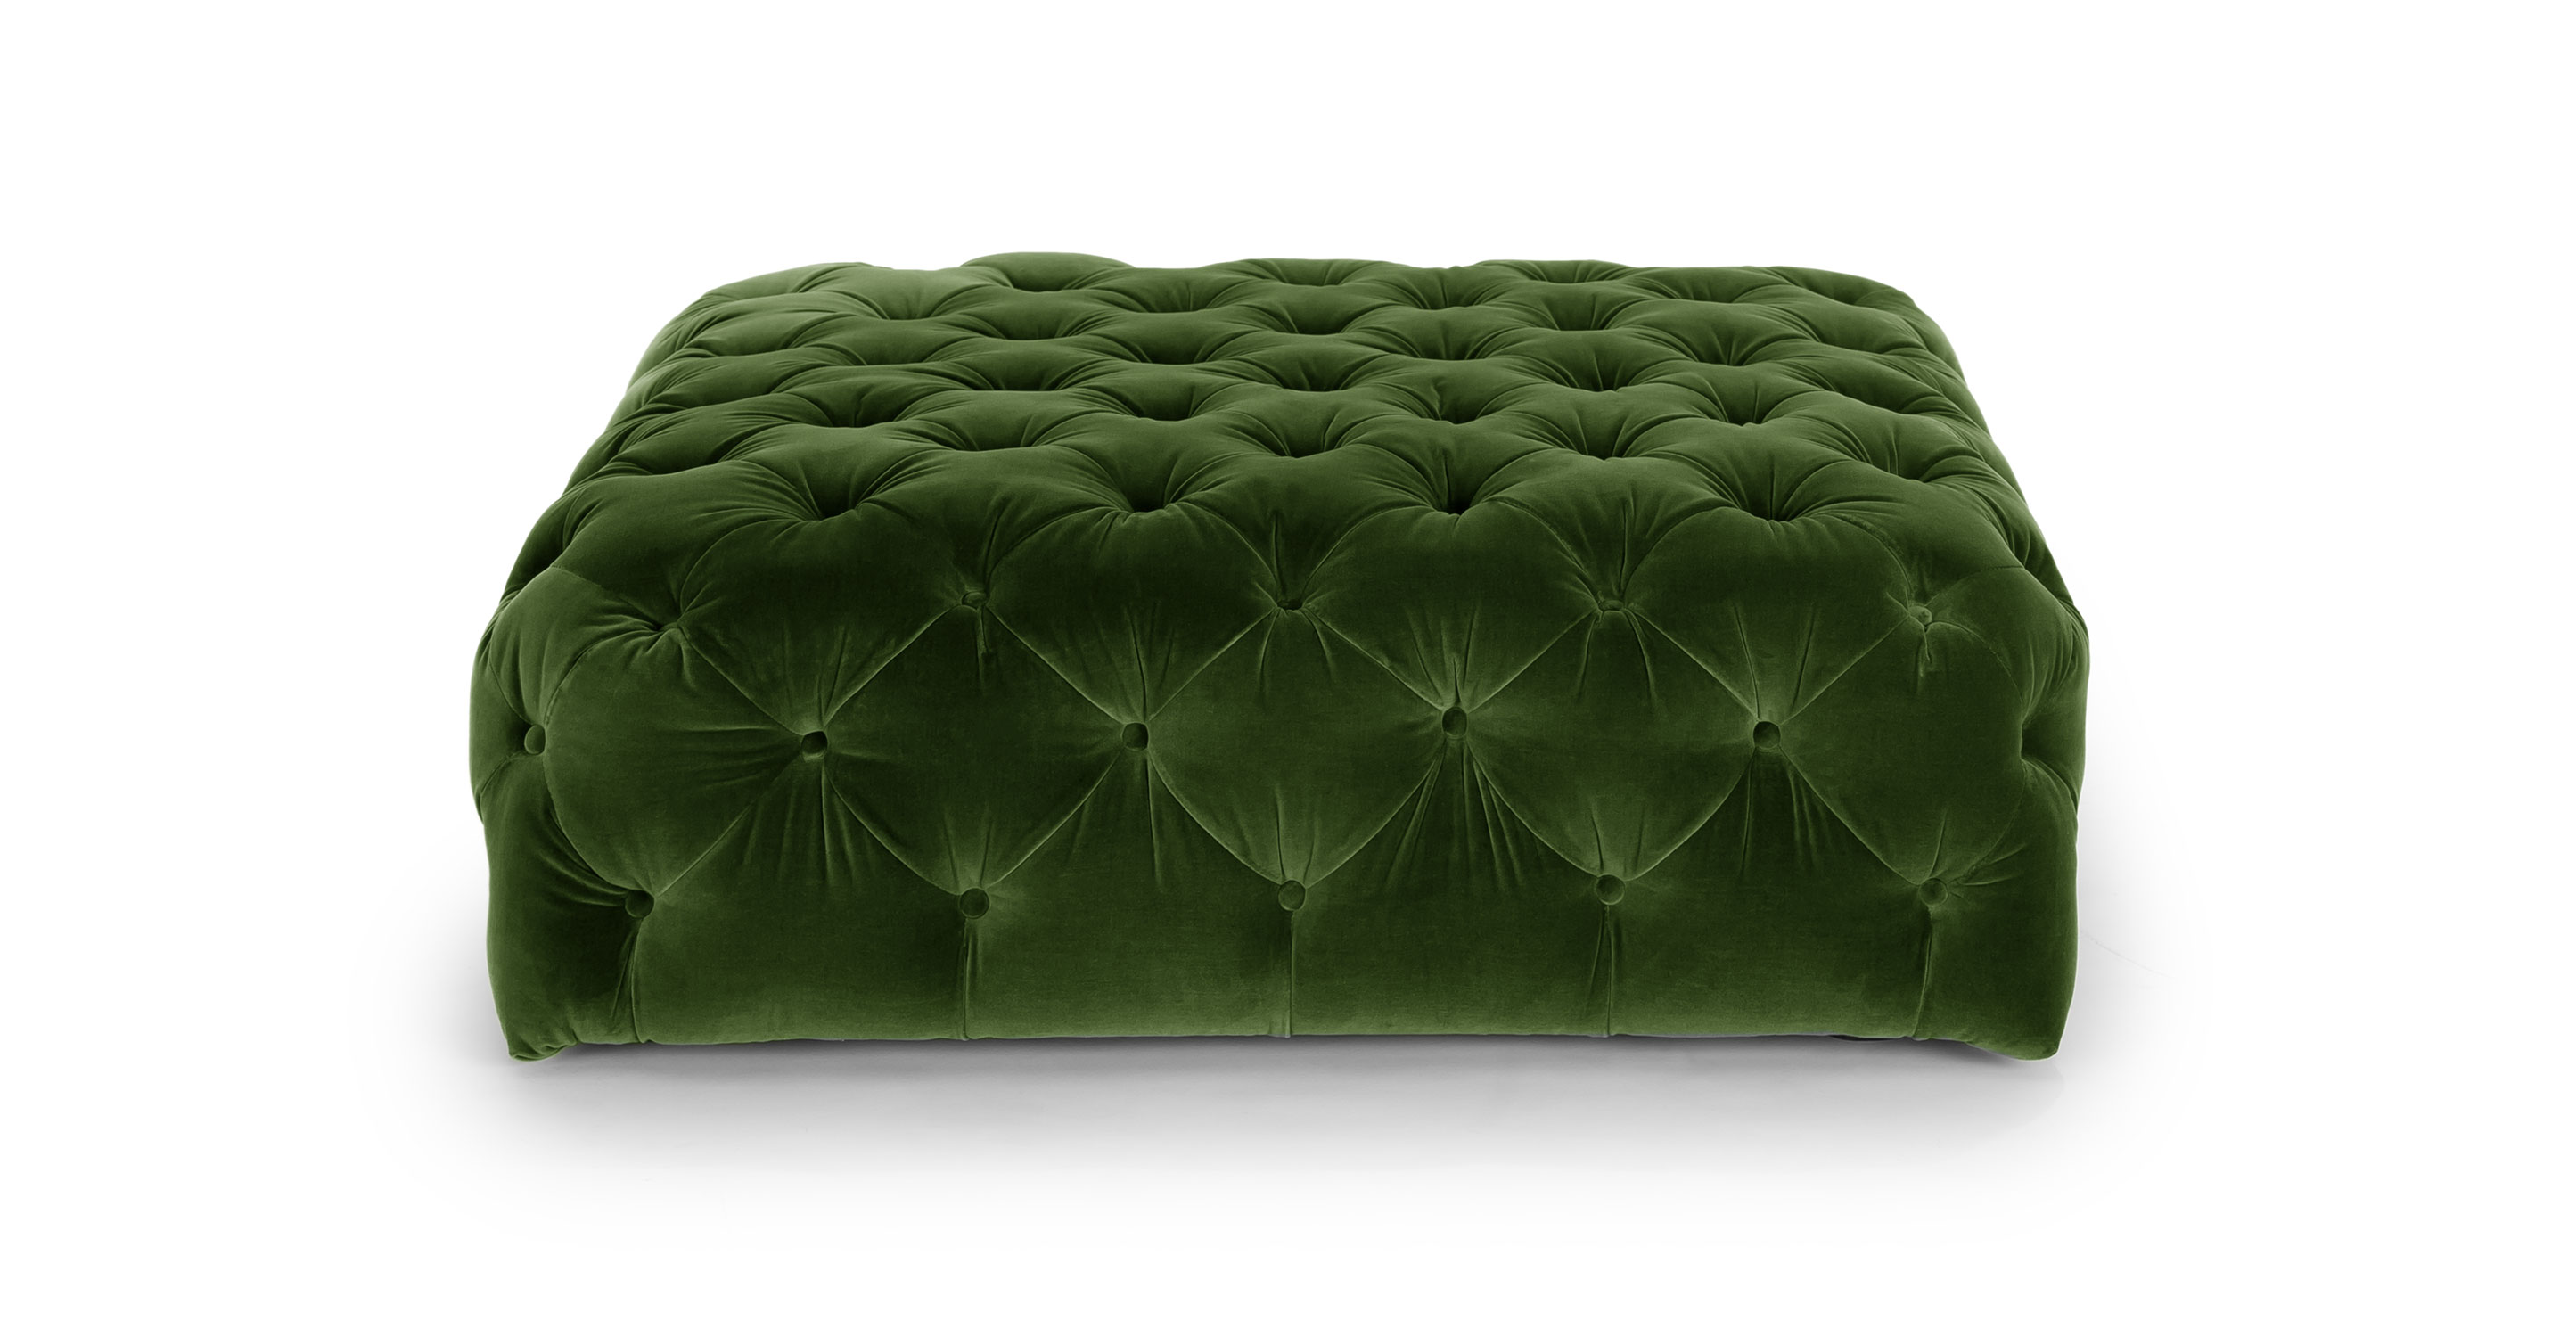 mid century style sofa canada sheets for beds uk diamond grass green ottoman - ottomans article | modern ...